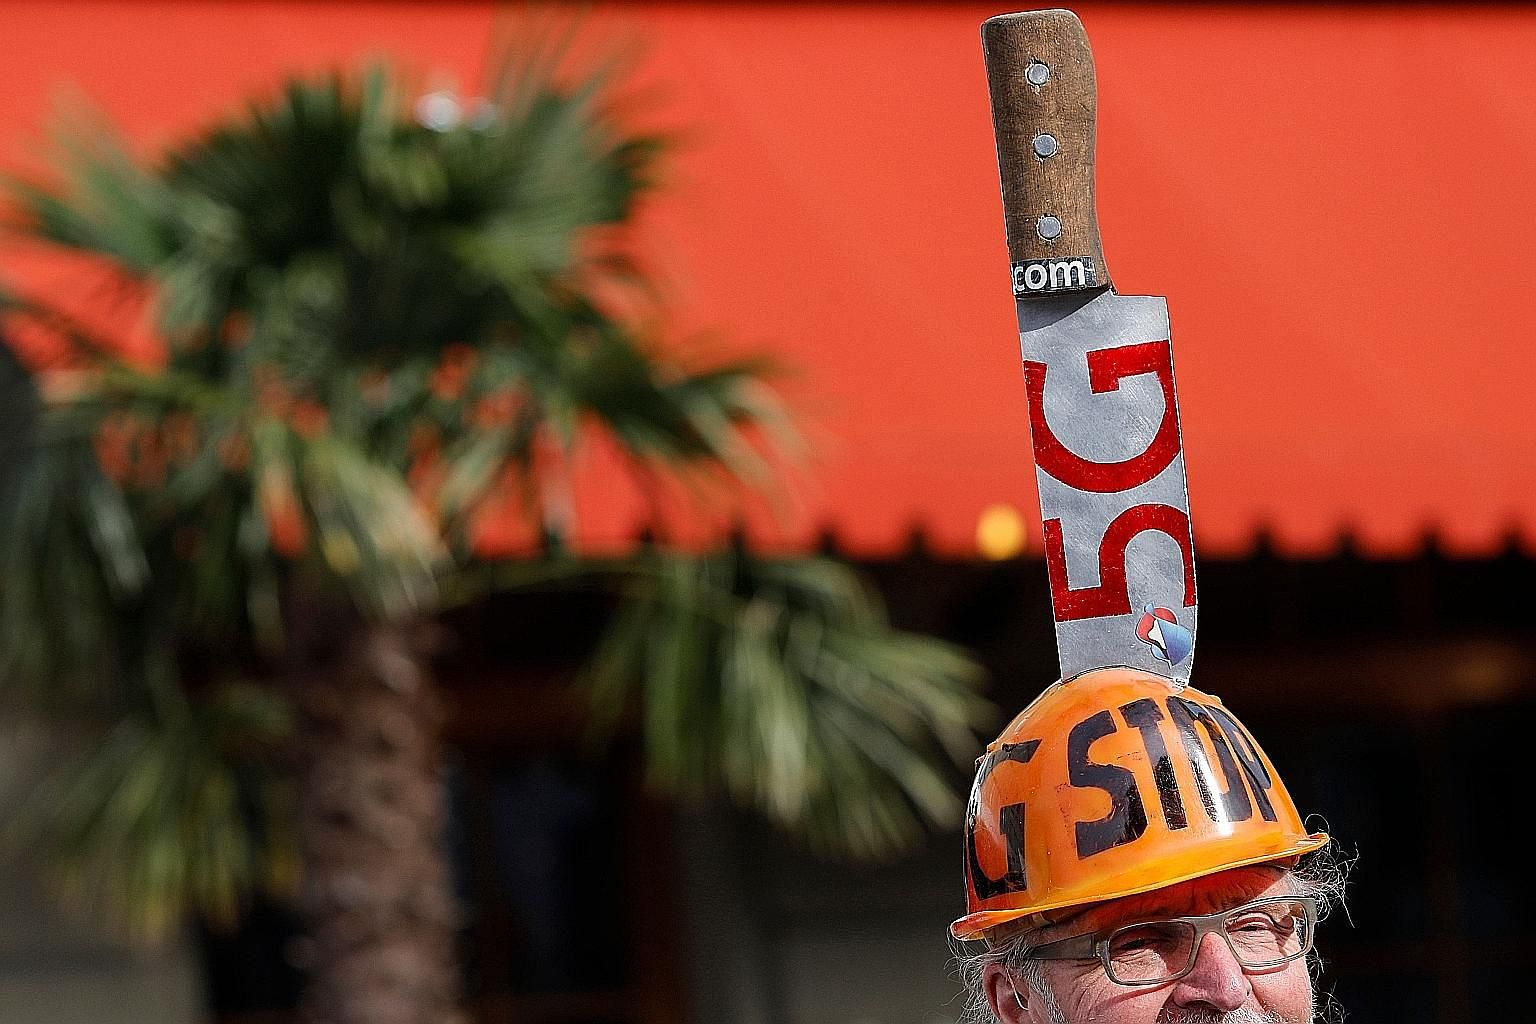 A demonstrator wearing a helmet with a knife during a protest against the 5G mobile communications network in Bern, Switzerland, in May.